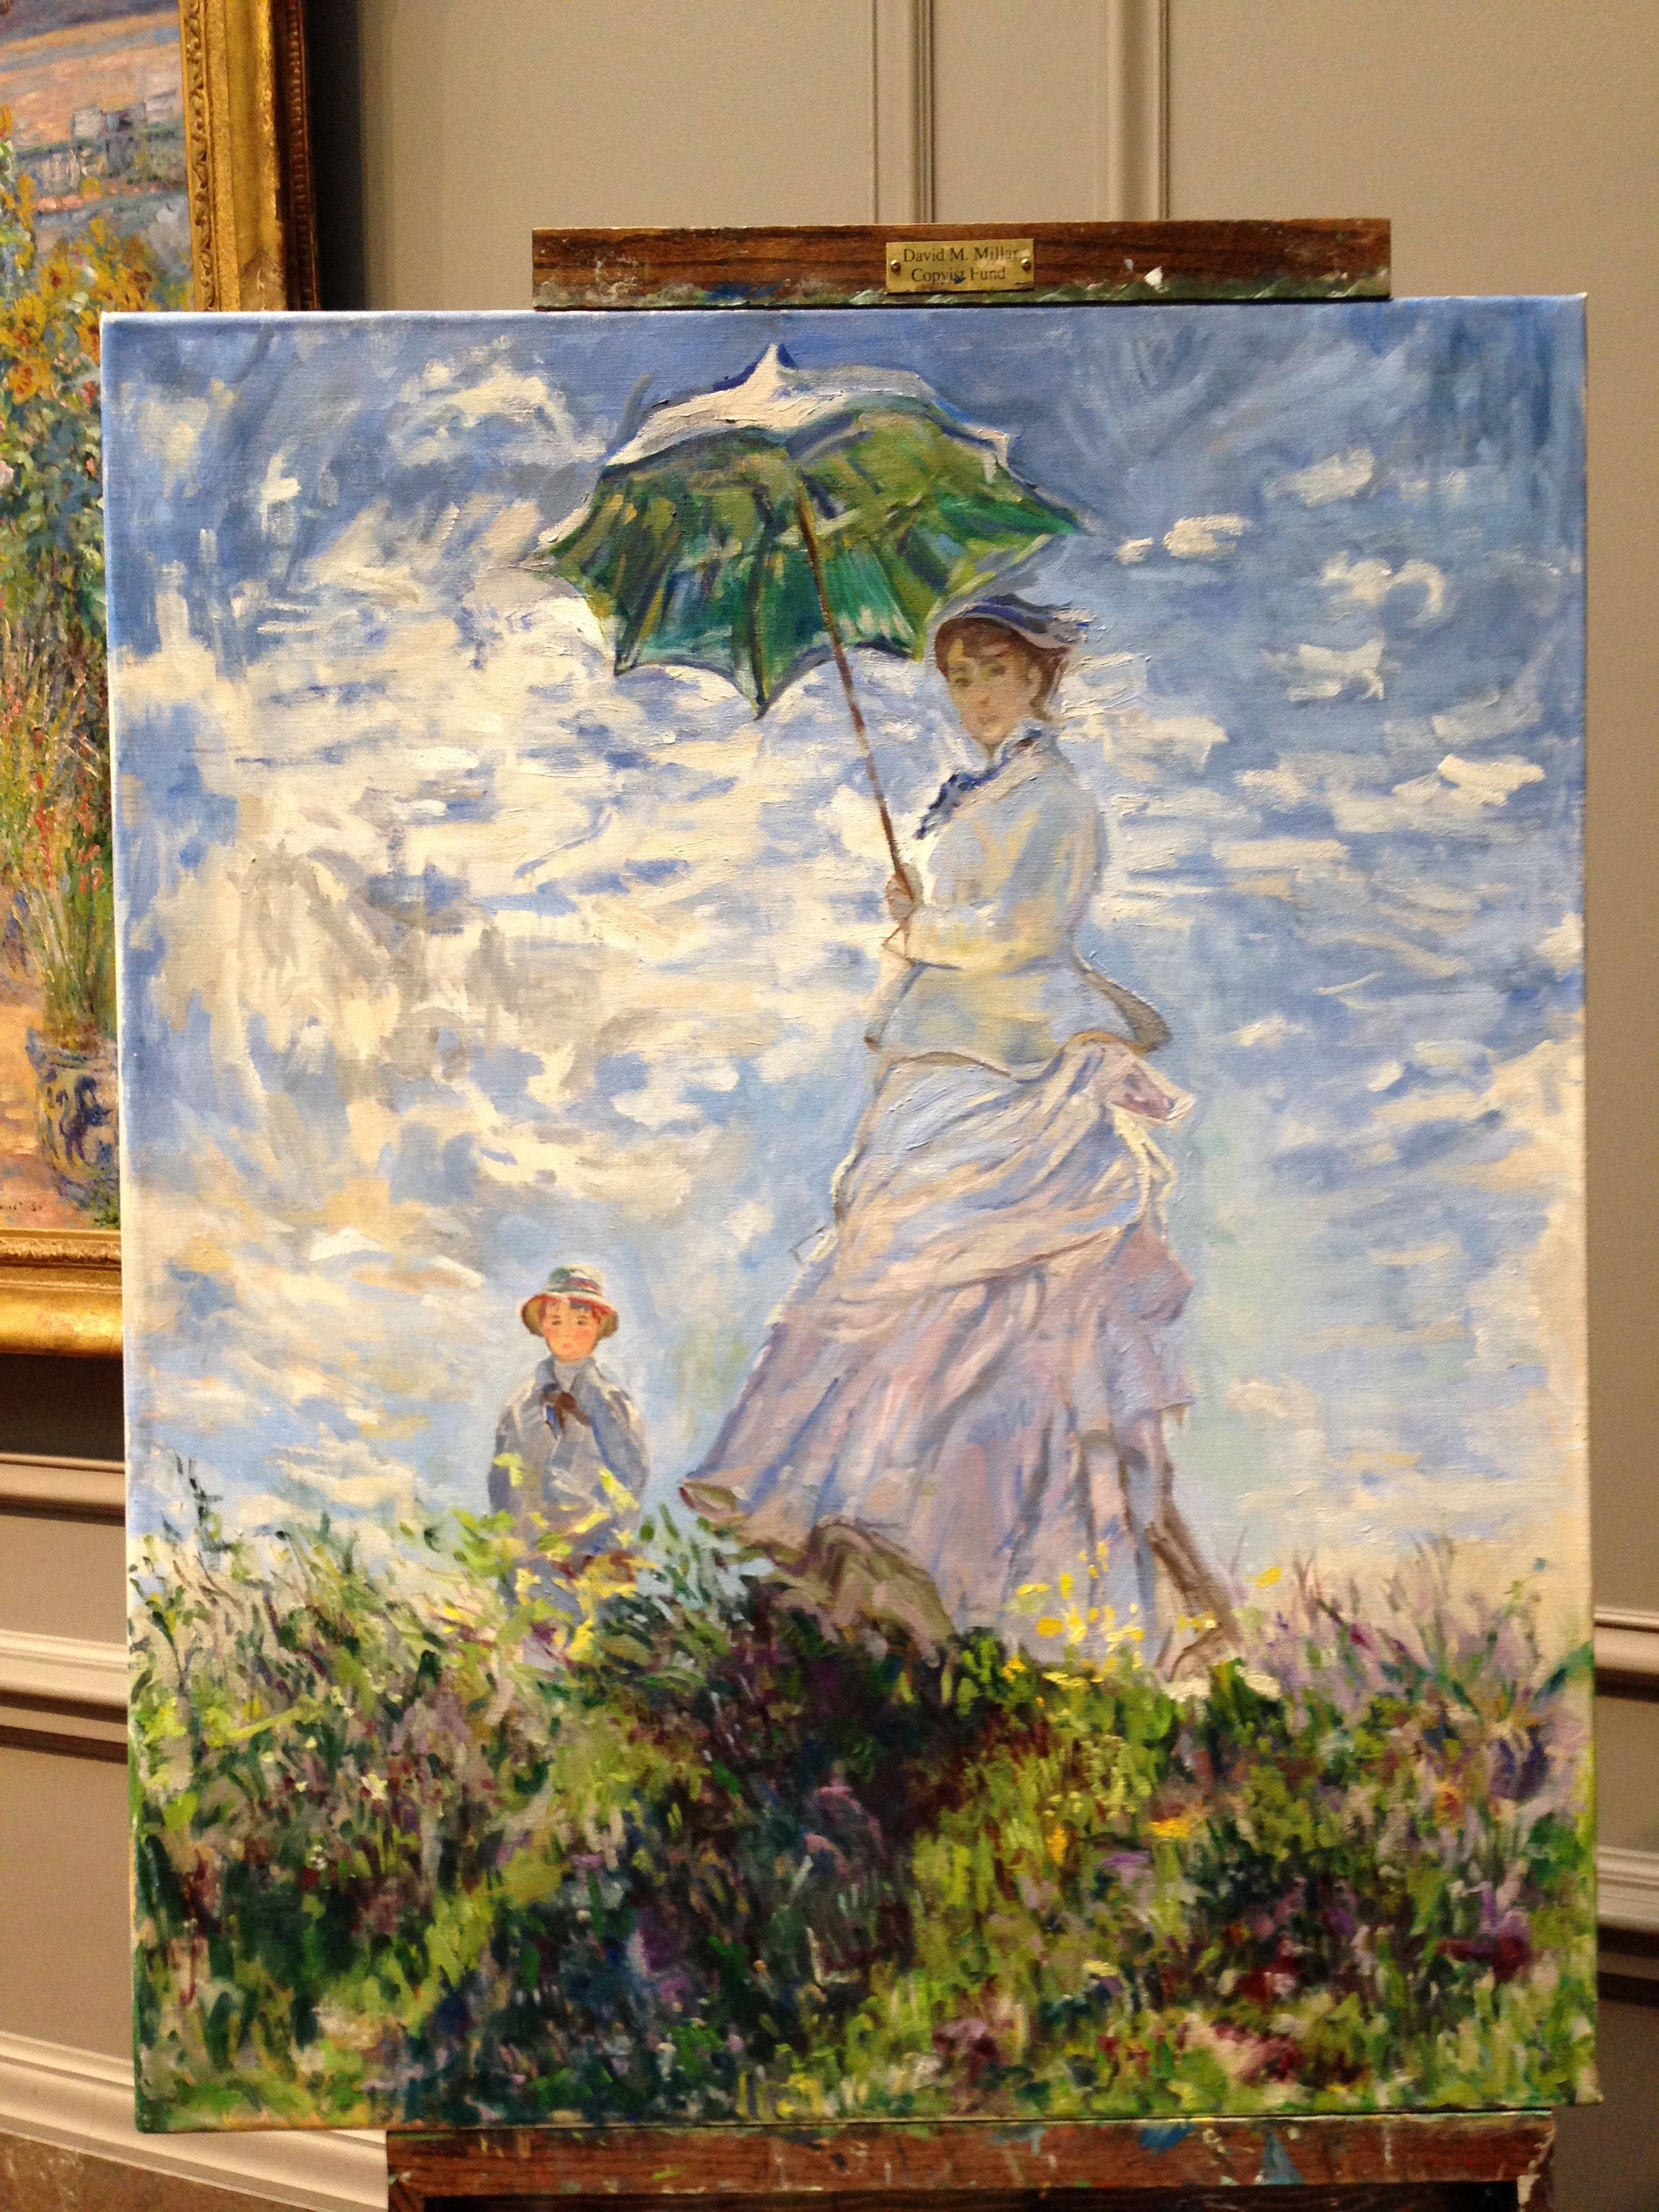 Copy in progress of Monet's Woman with Parasol